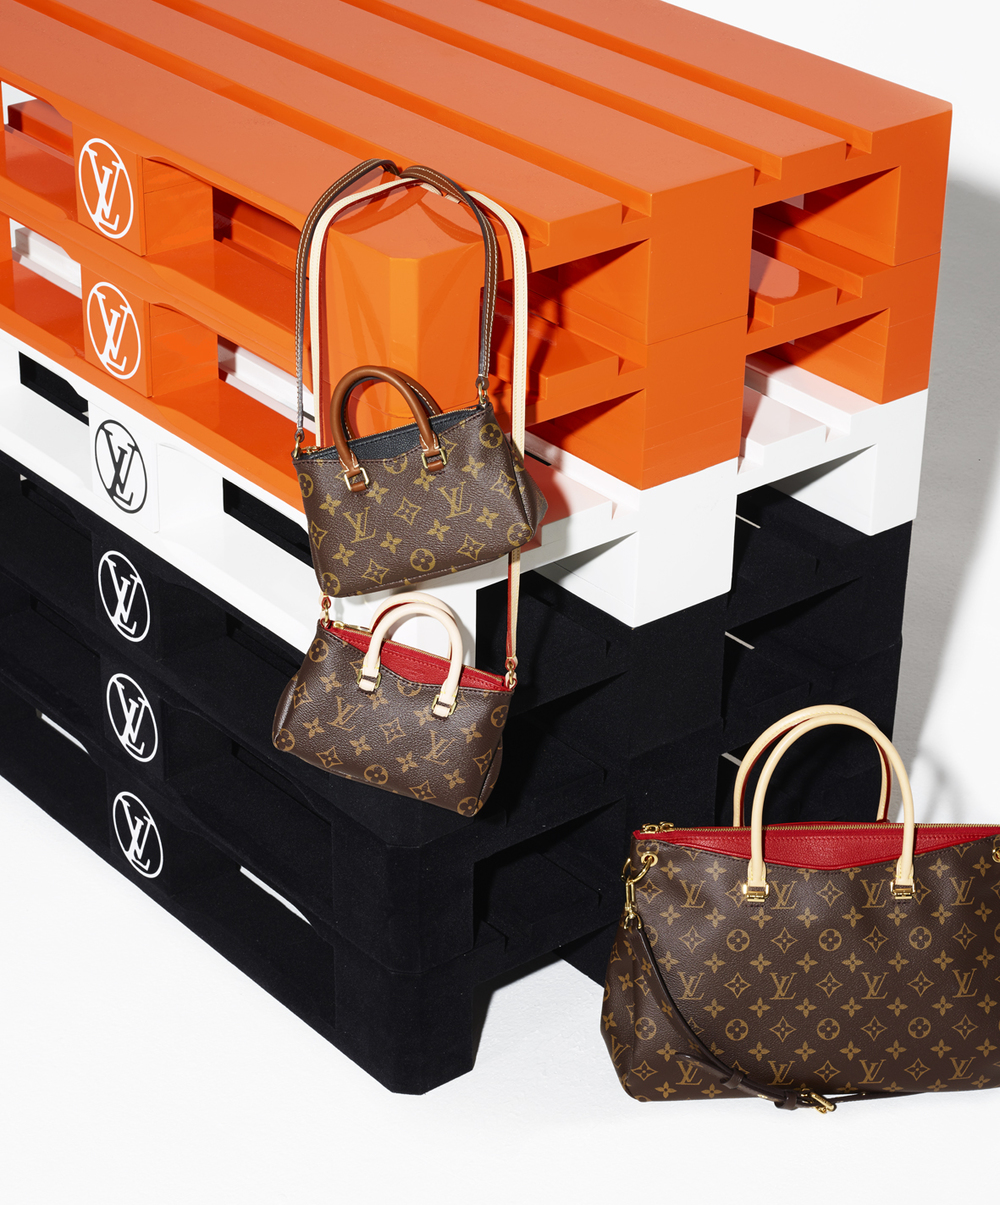 LouisVuitton_10_029.jpg